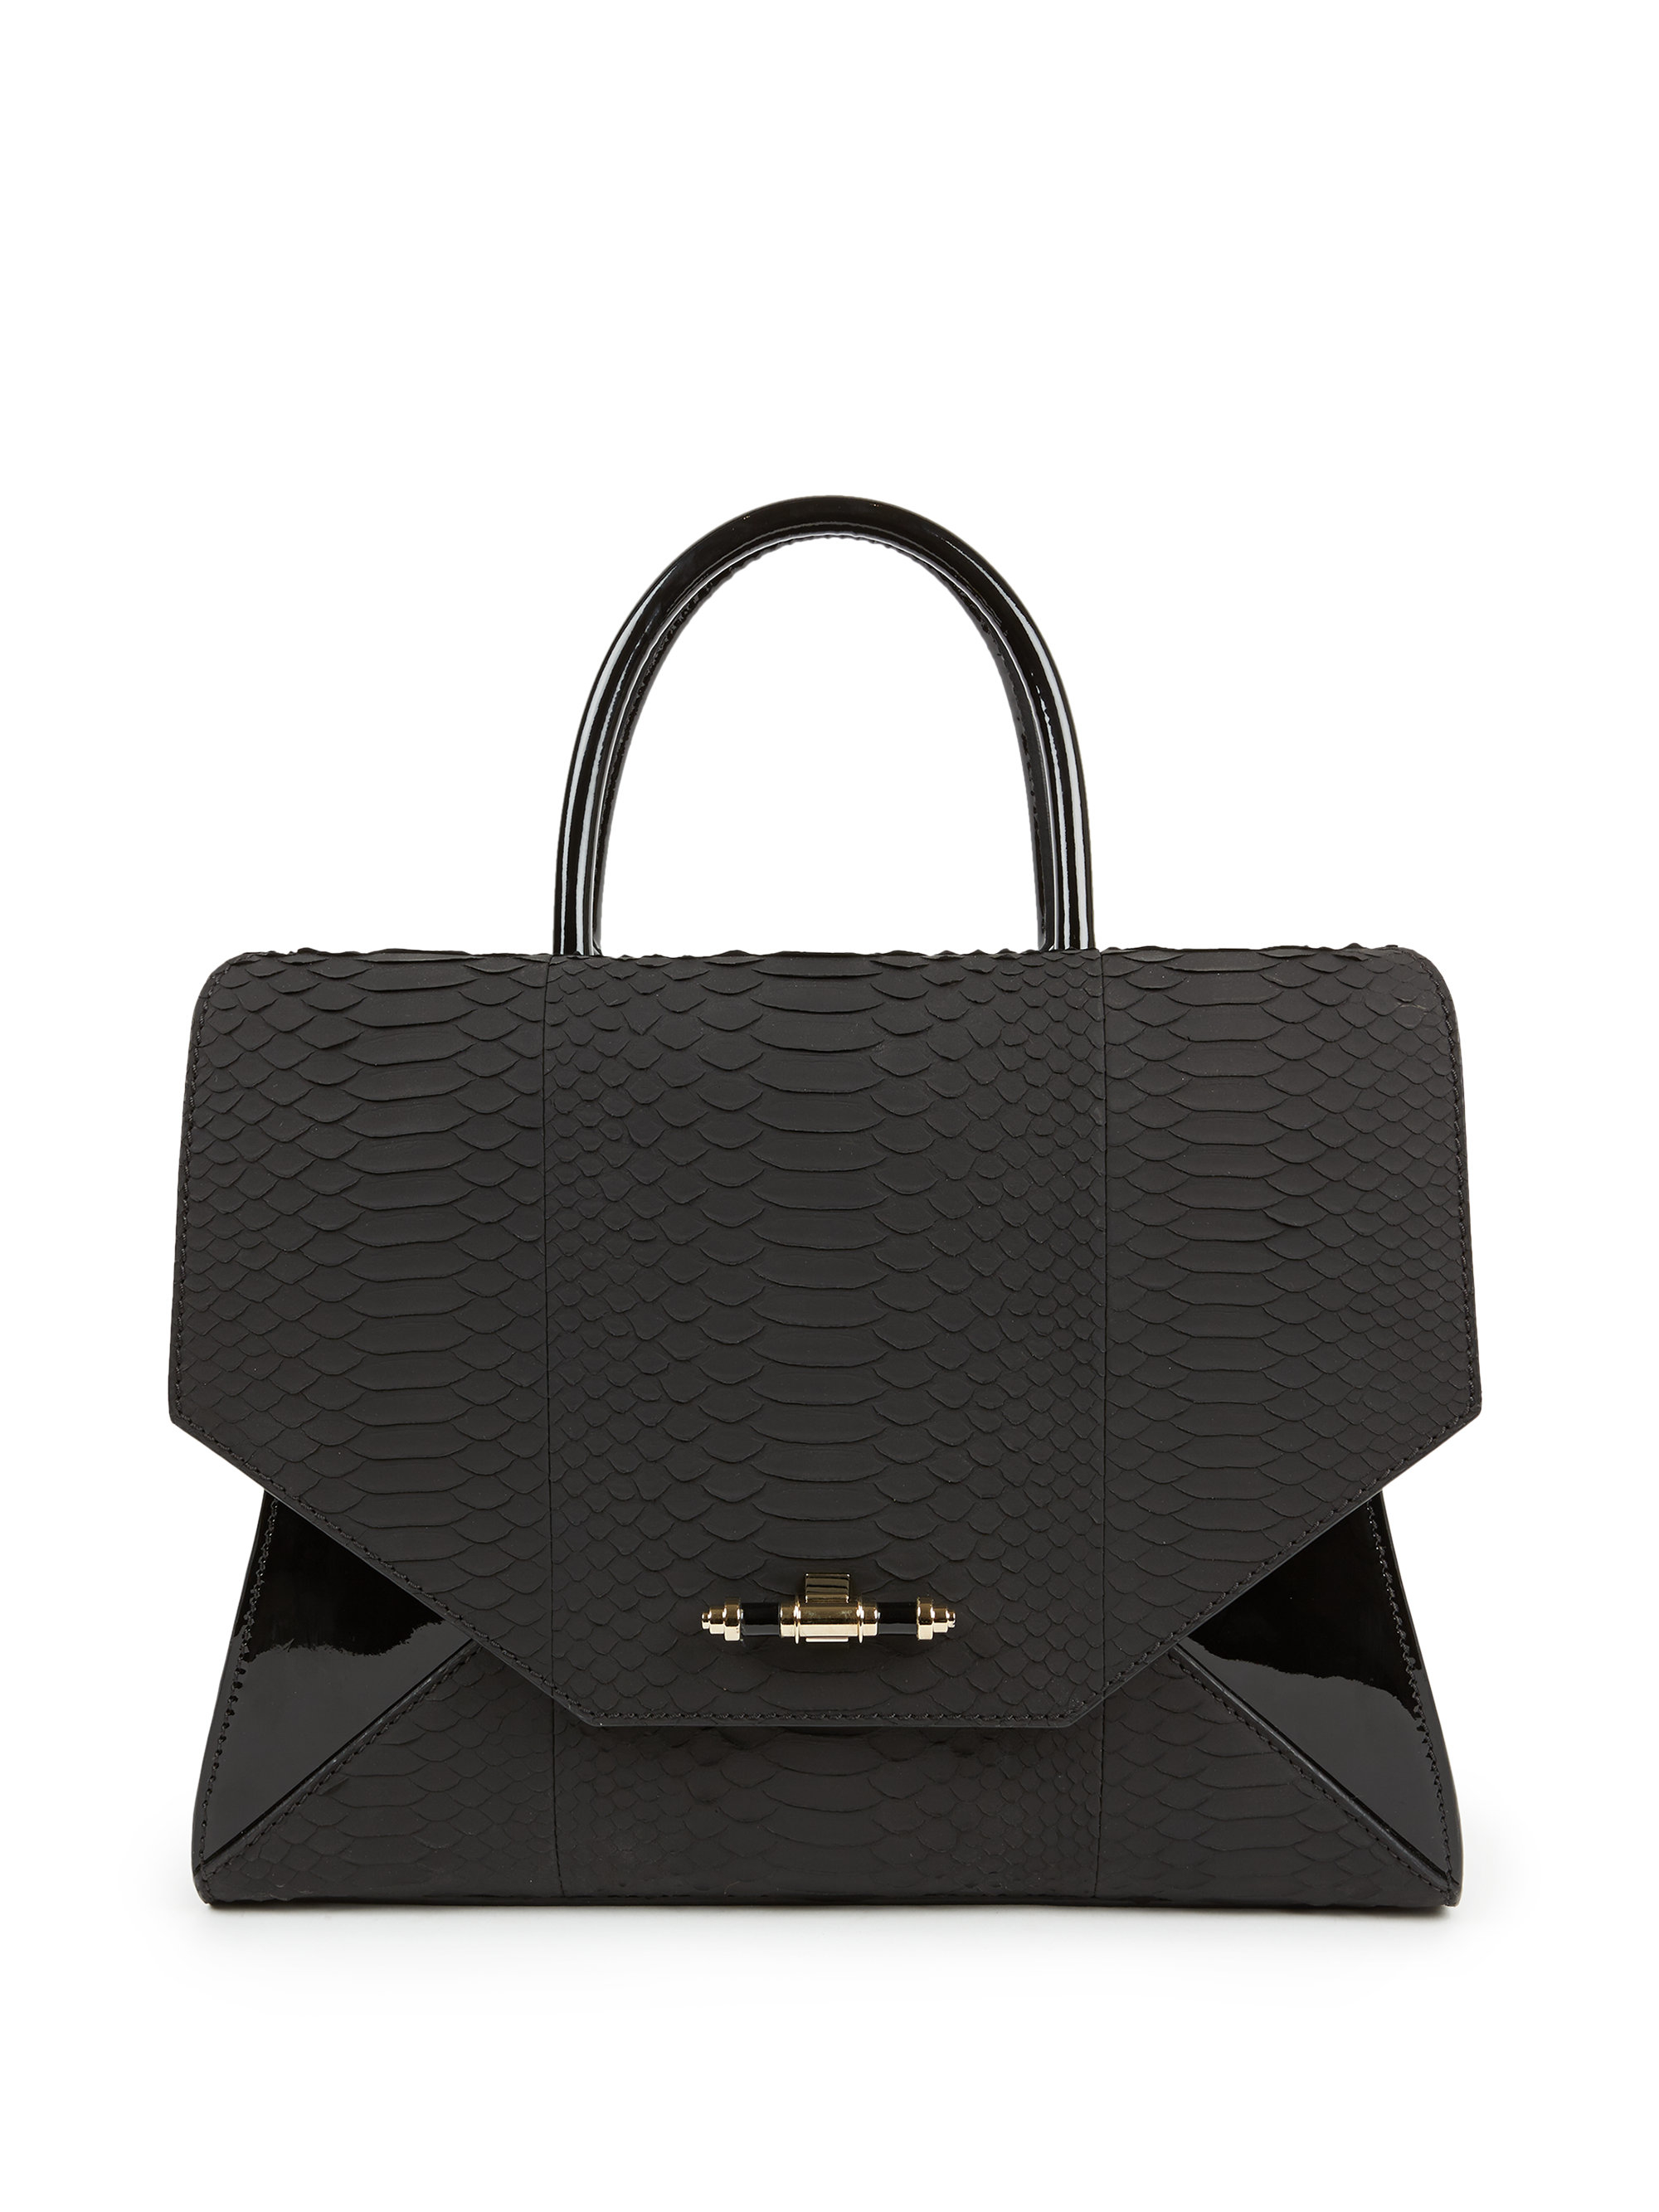 Givenchy python nightingale satchel givenchy online outlet for Givenchy outlet online